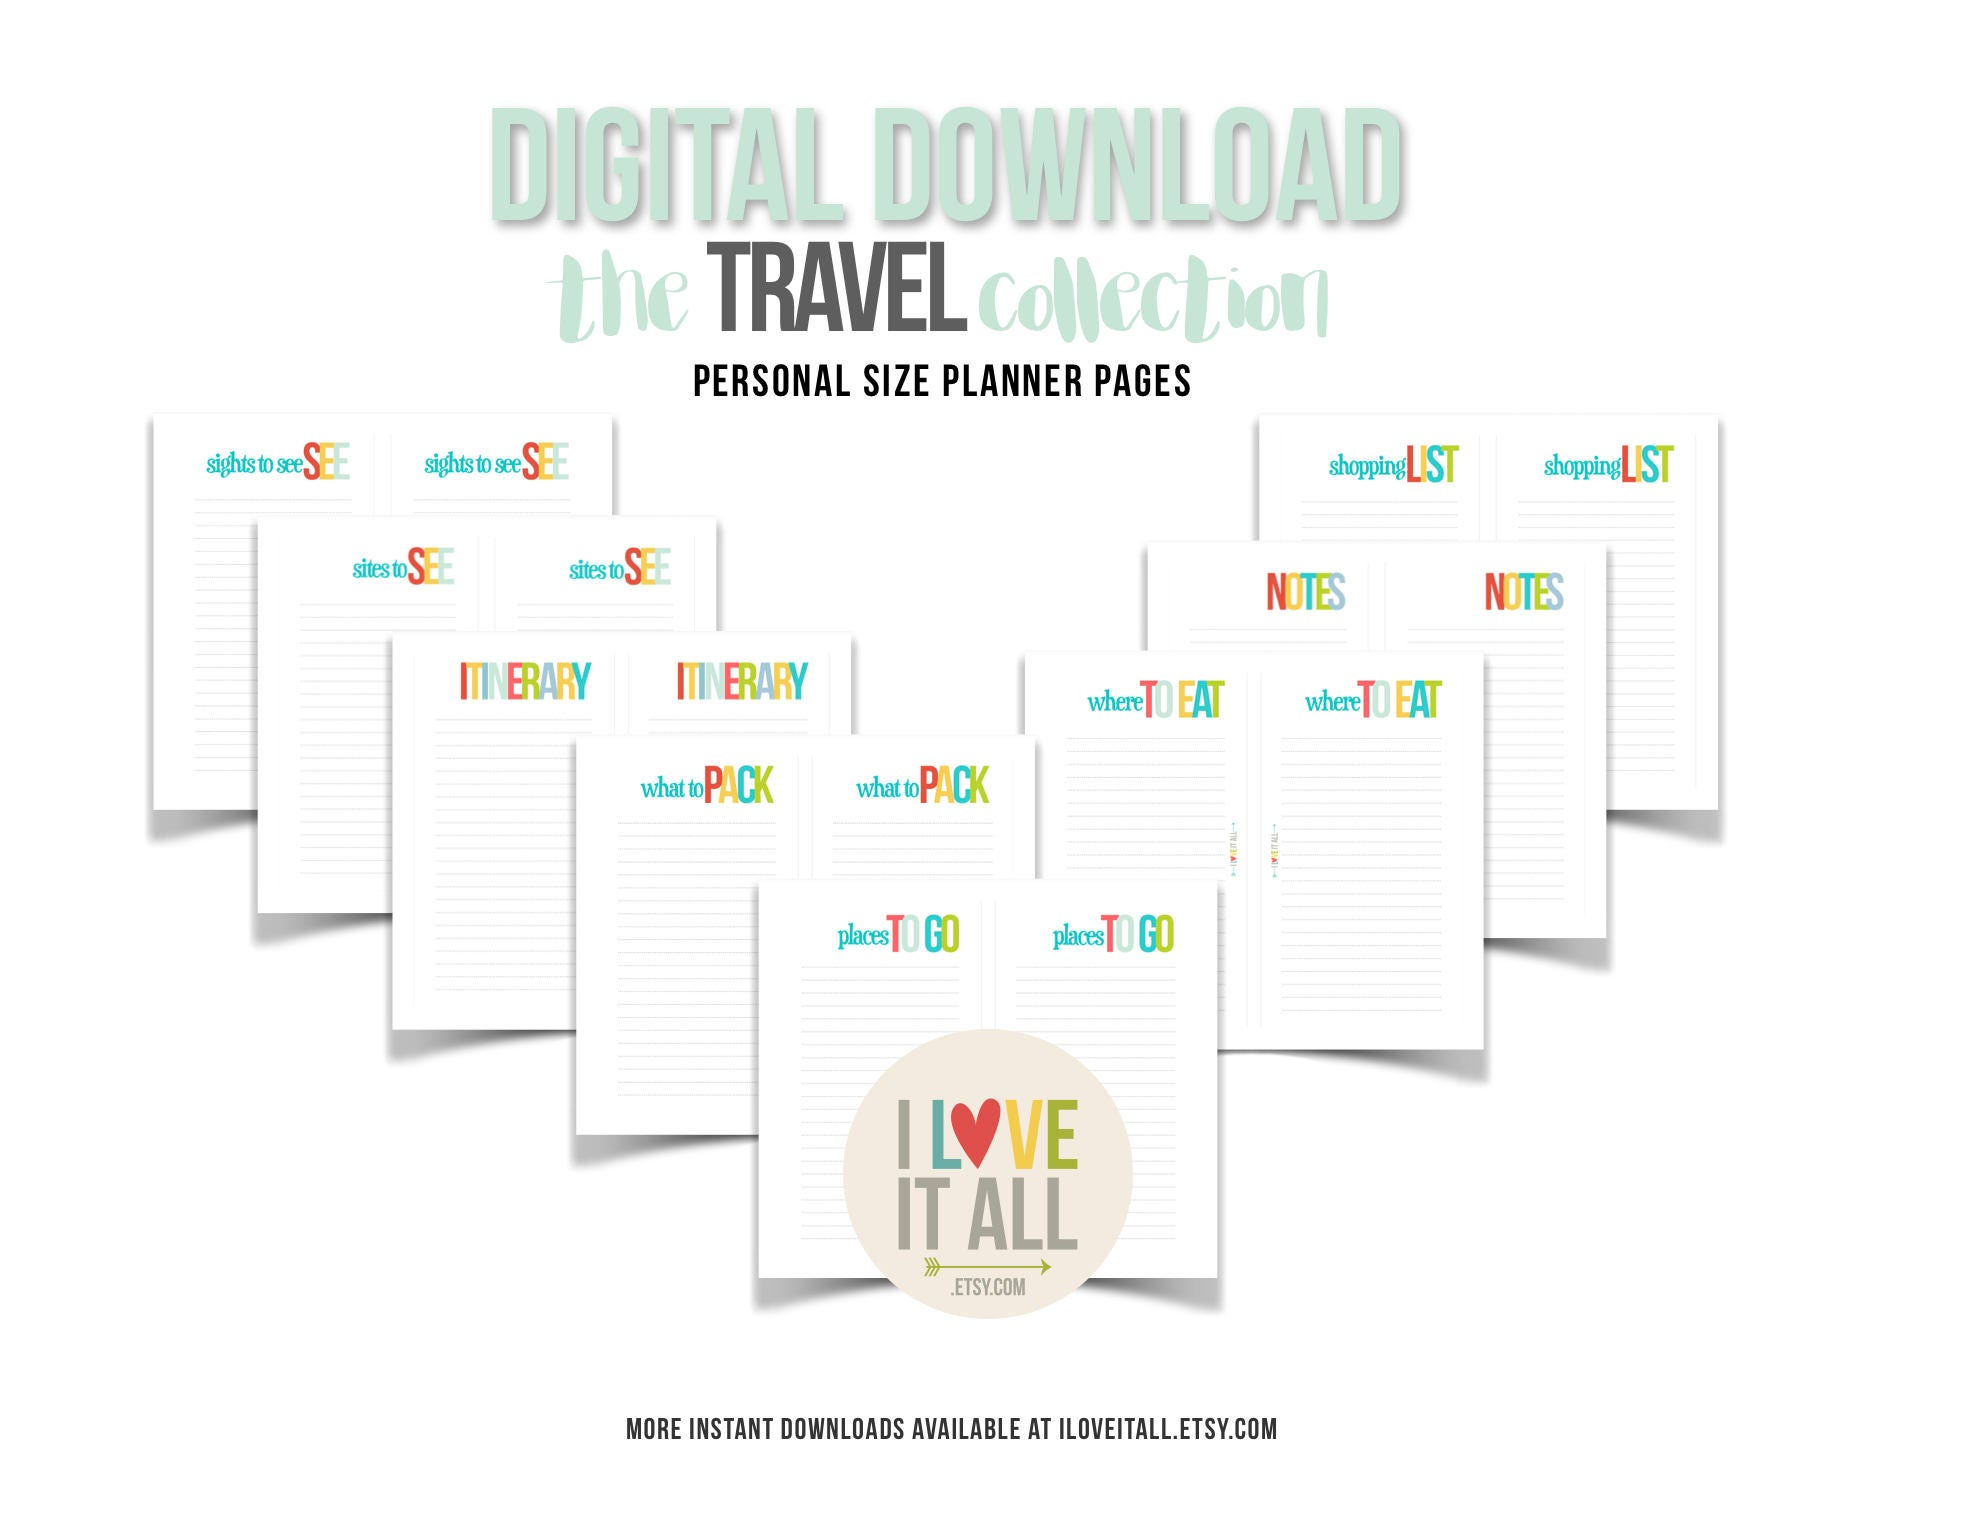 travel planner insert pages printable filofax personal planner downloads digital planner download sights to see packing list places